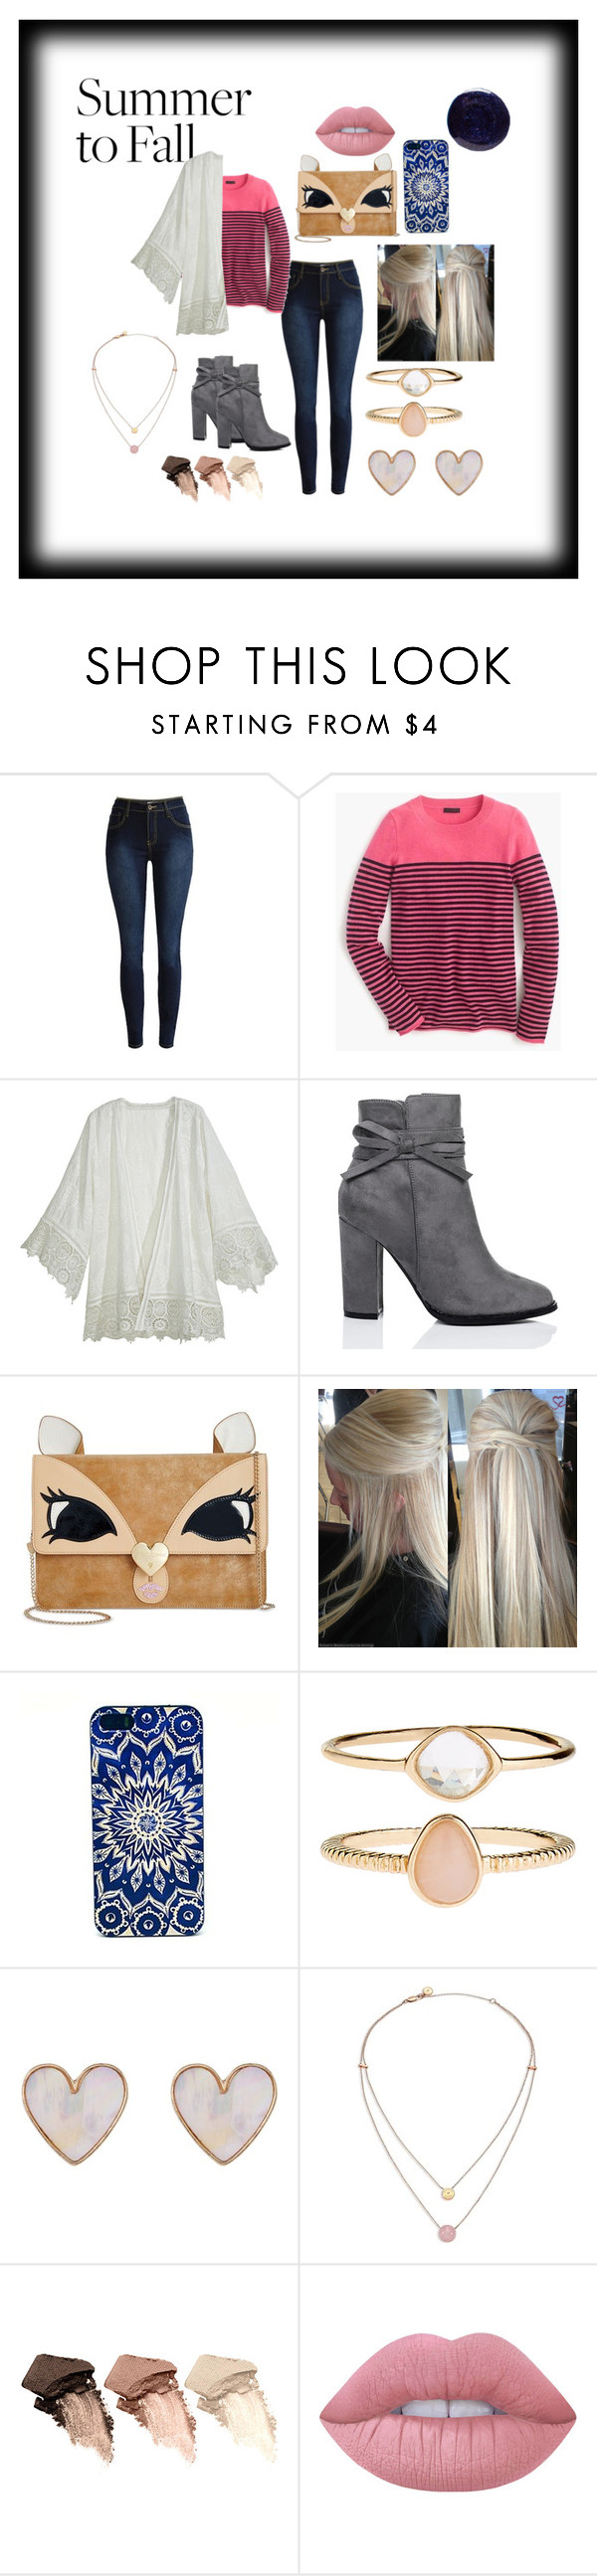 """""""Summer to fall"""" by vballgirl03 ❤ liked on Polyvore featuring J.Crew, Calypso St. Barth, Betsey Johnson, Accessorize, New Look, Michael Kors, Urban Decay, Lime Crime, Lauren B. Beauty and layers"""